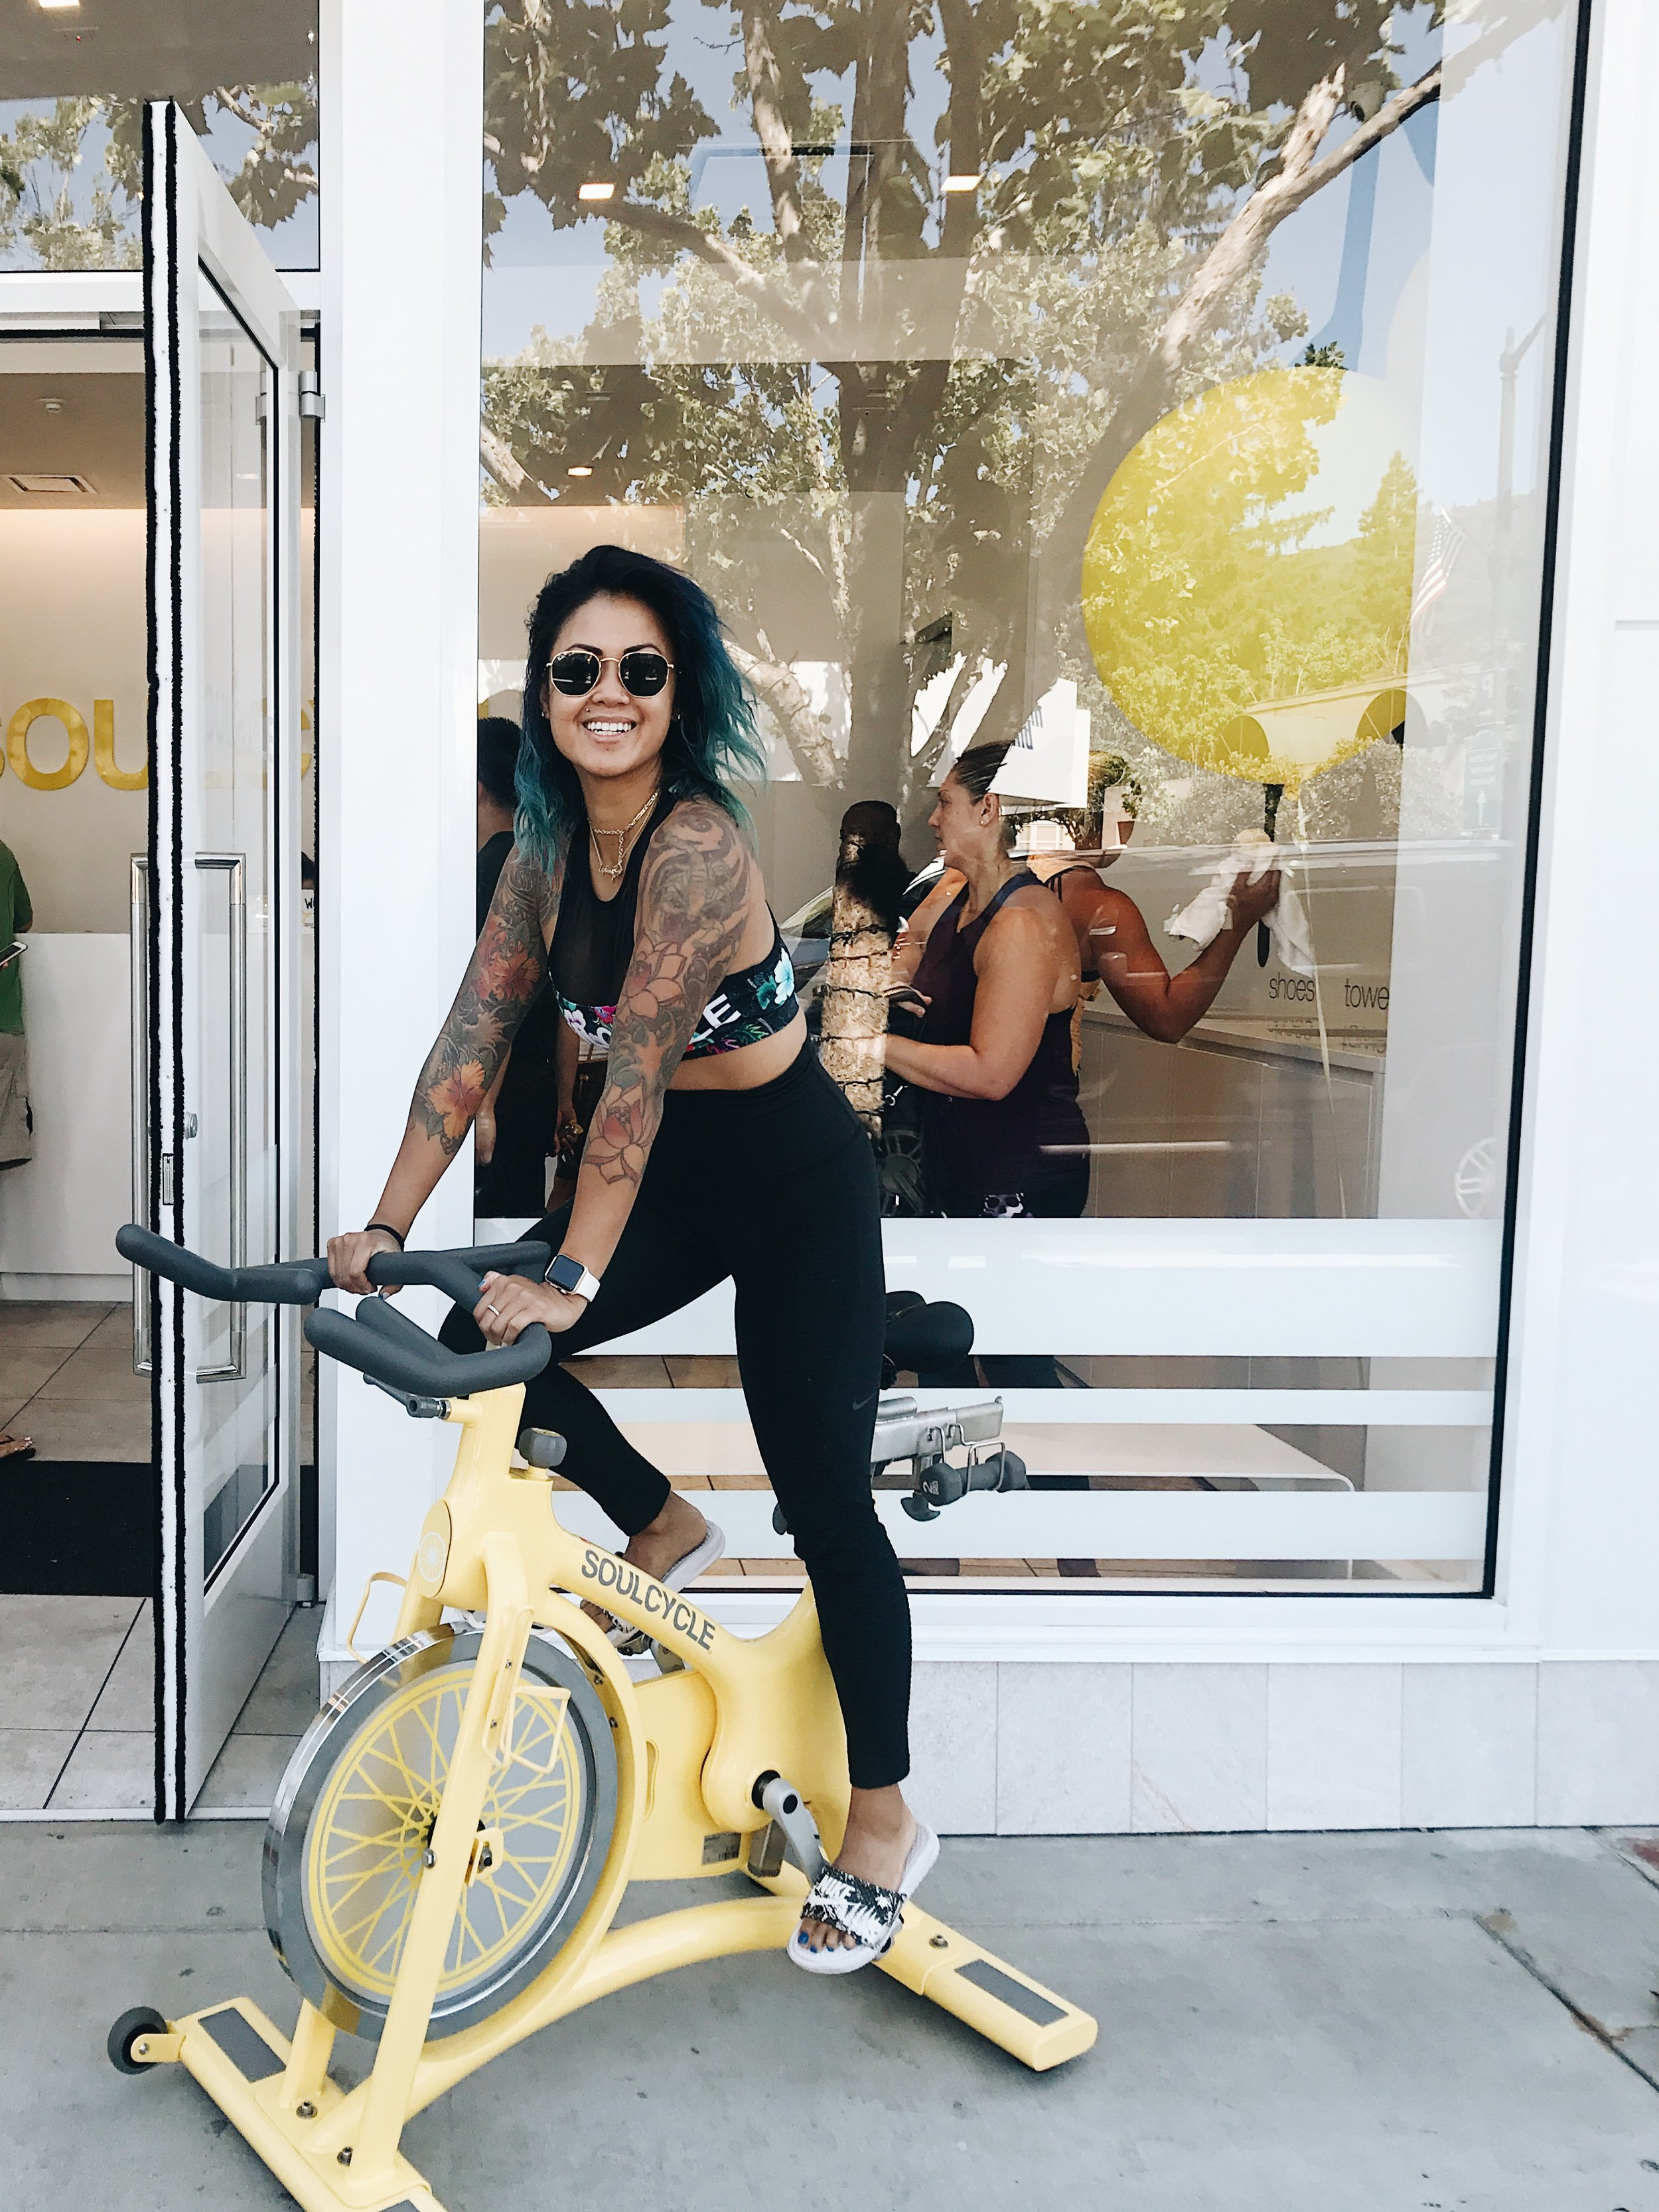 TAP IT BACK AT - SOULCYCLE GATO